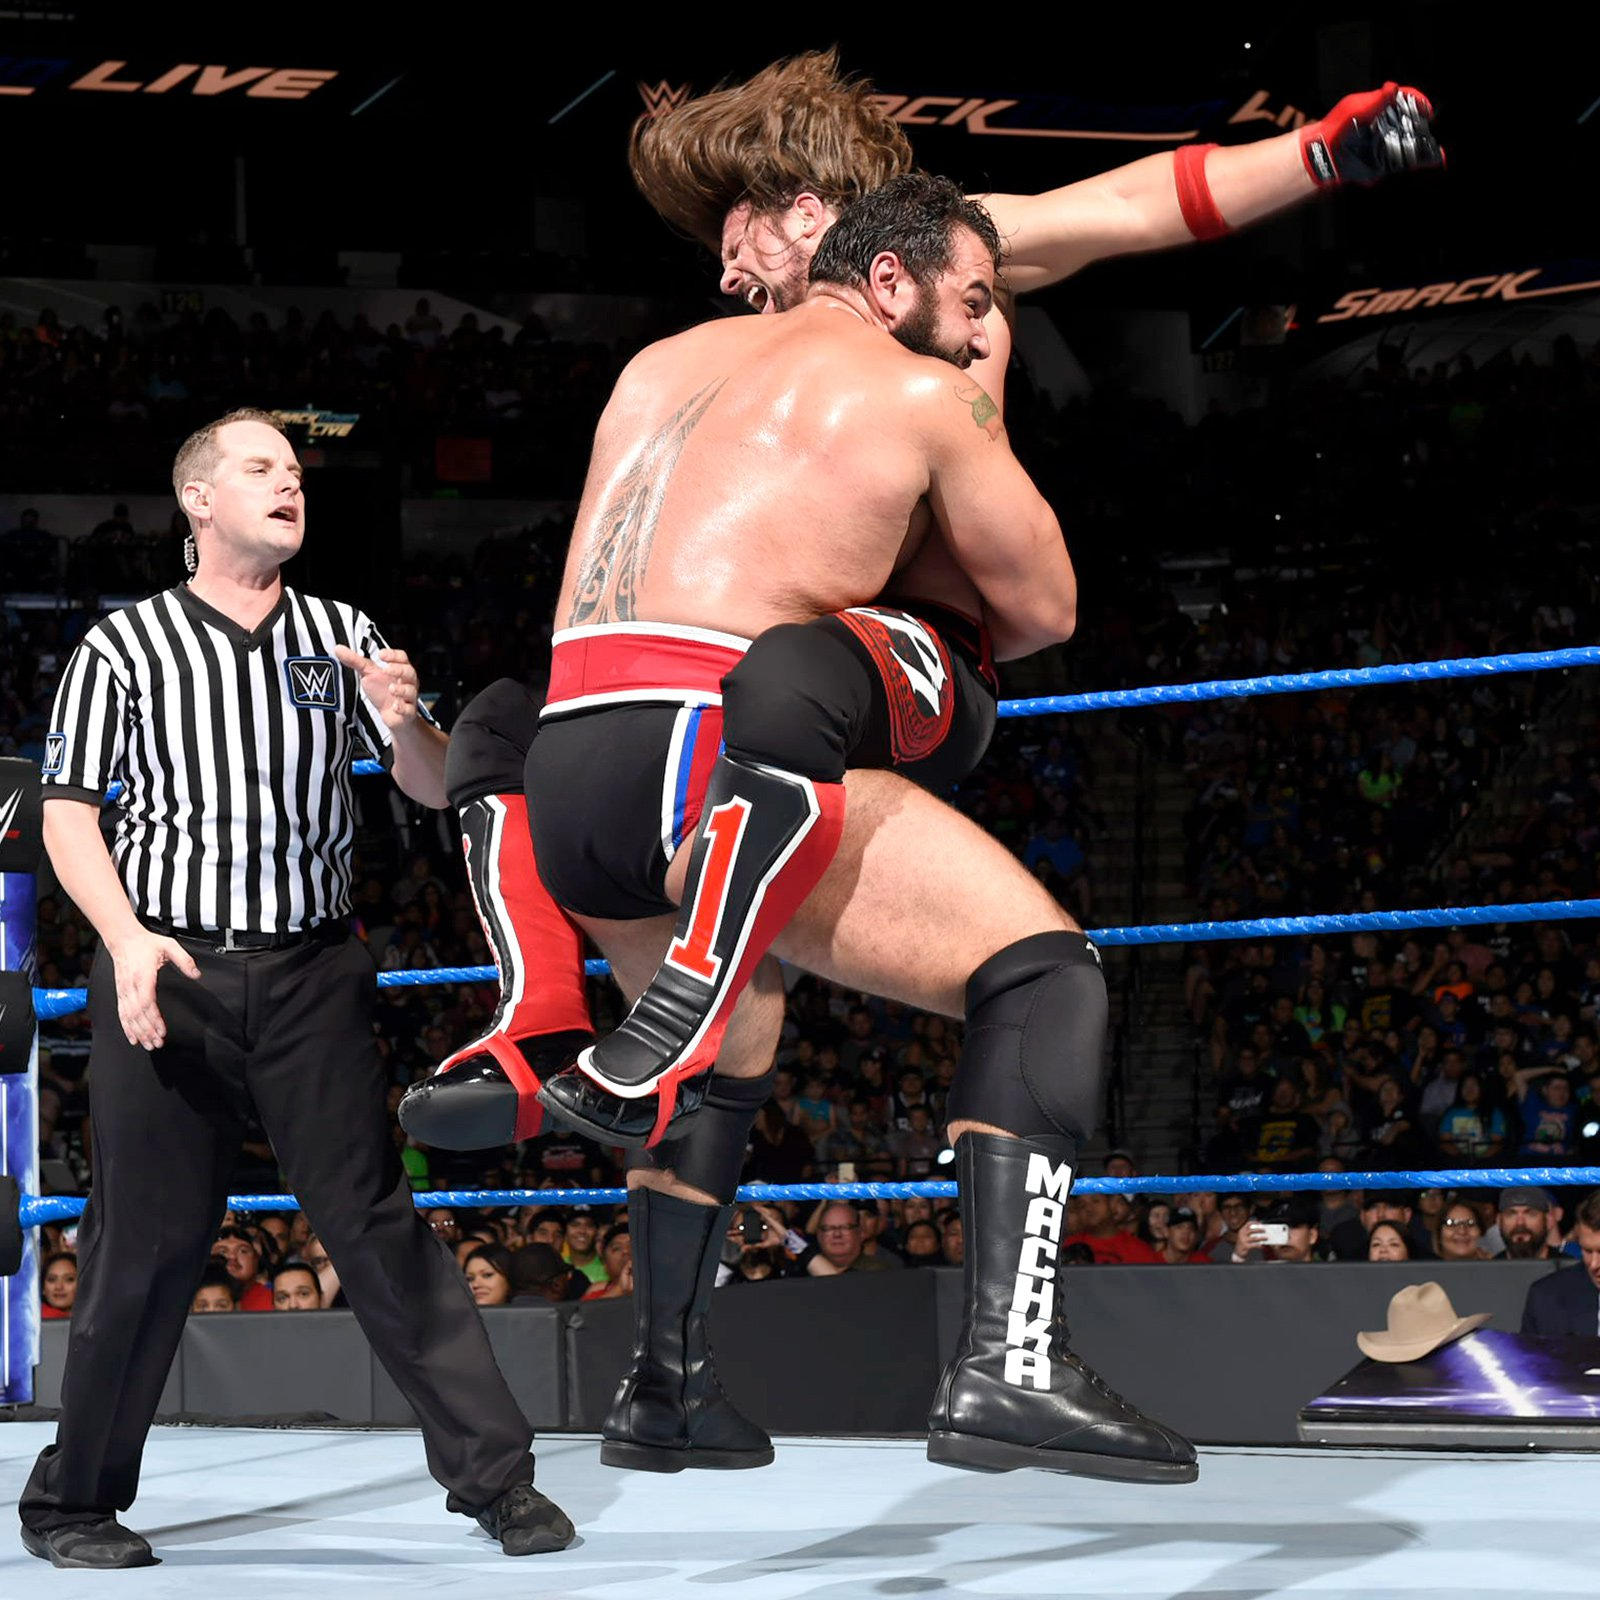 Rusev tries to slow the pace against The Phenomenal One...